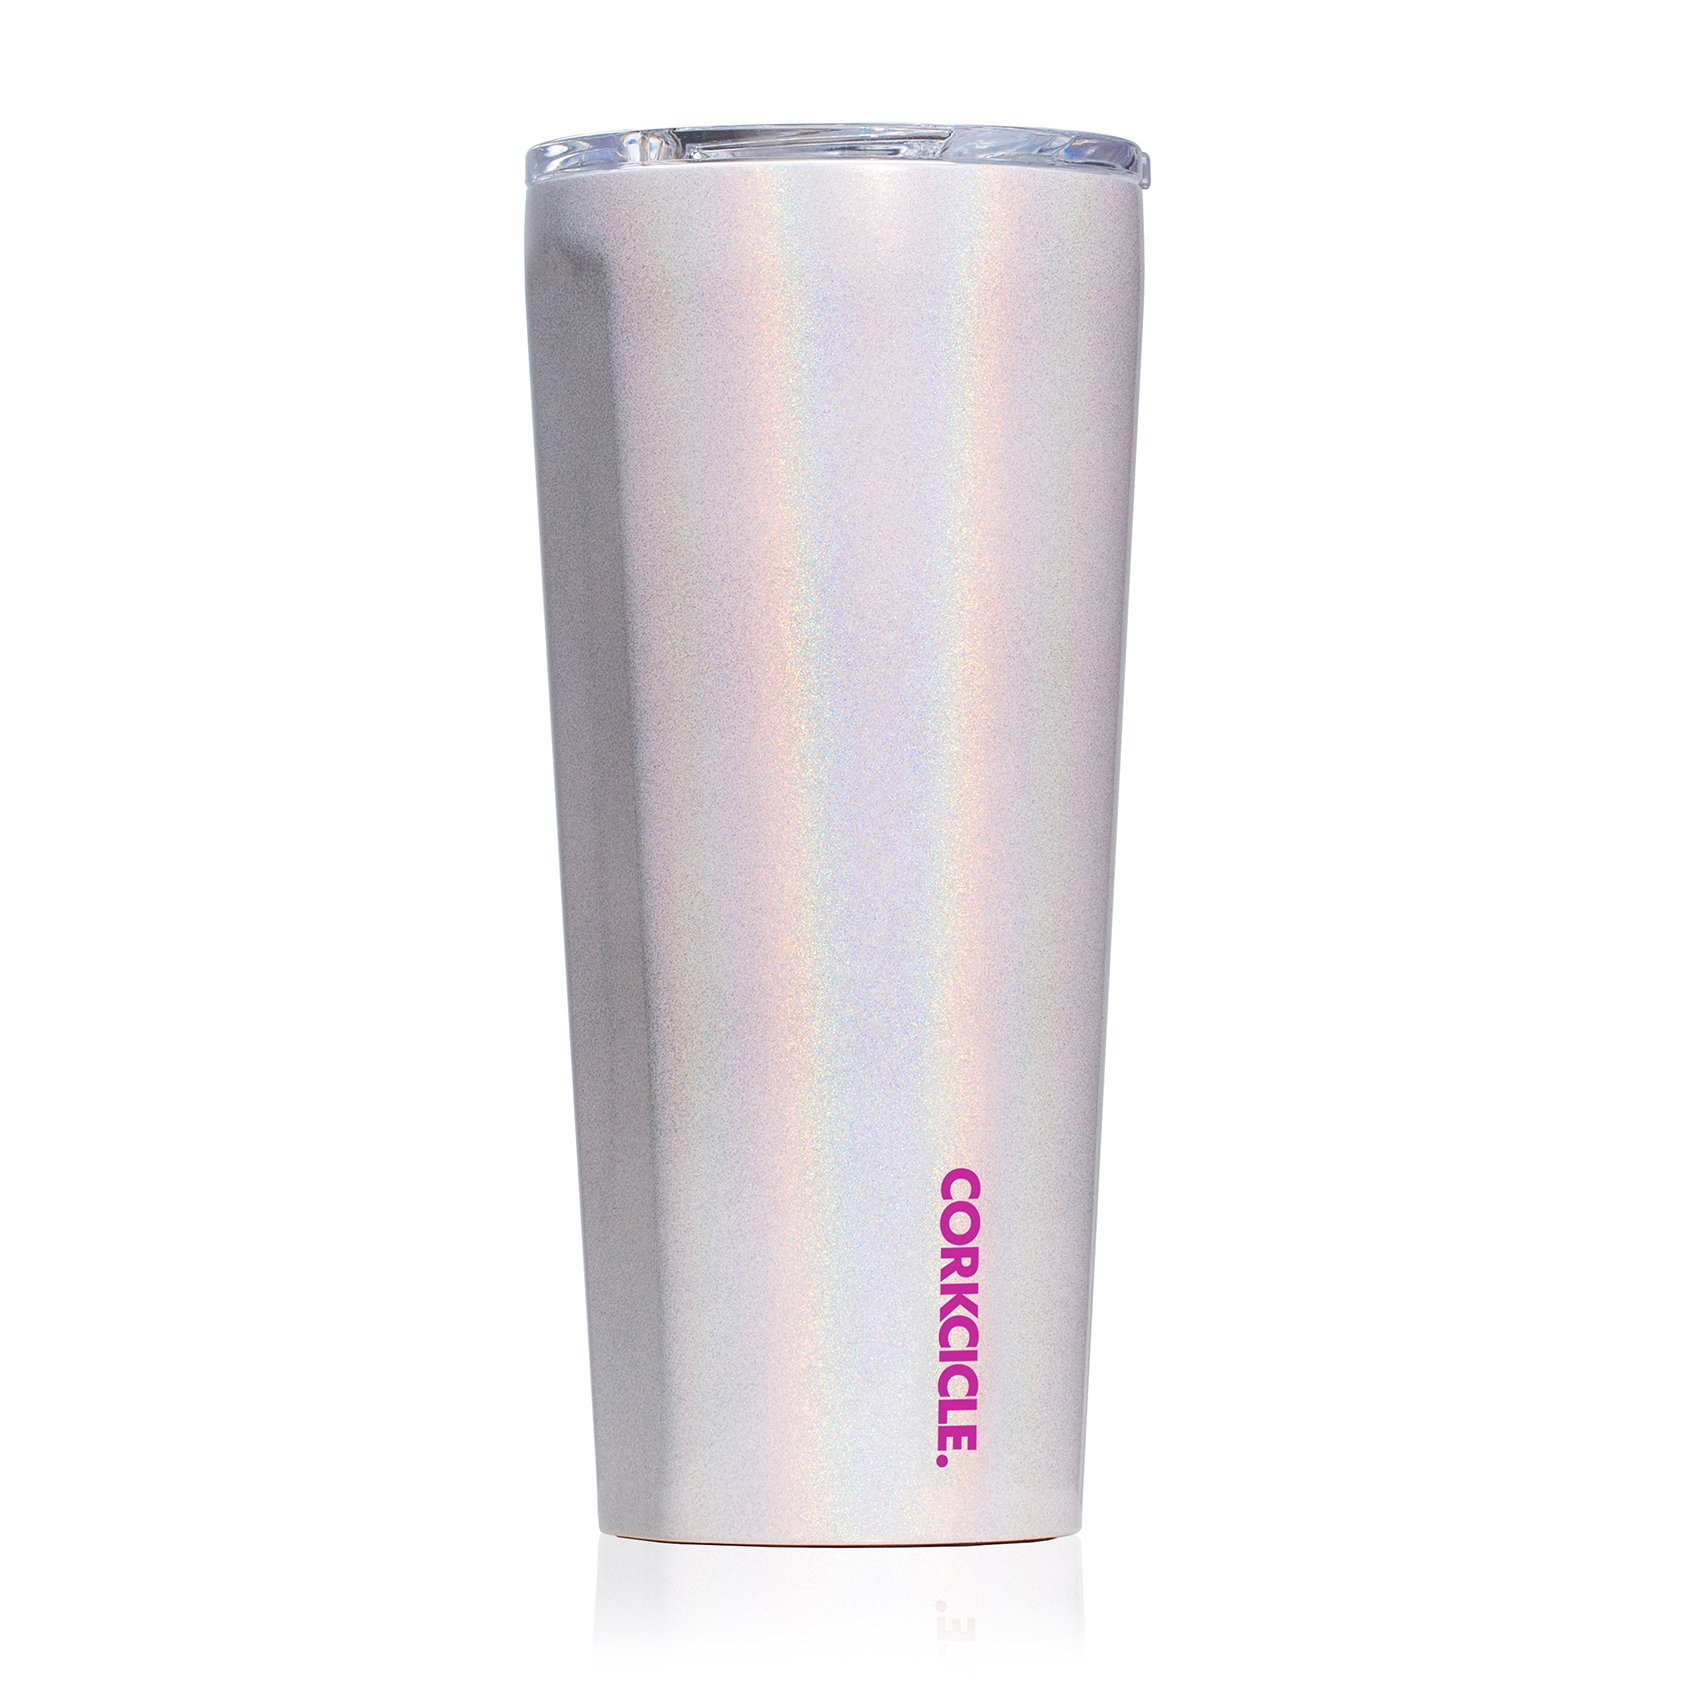 Corkcicle Tumbler - Classic Collection - Triple Insulated Stainless Steel Travel Mug, Sparkle Unicorn Magic, 24 oz